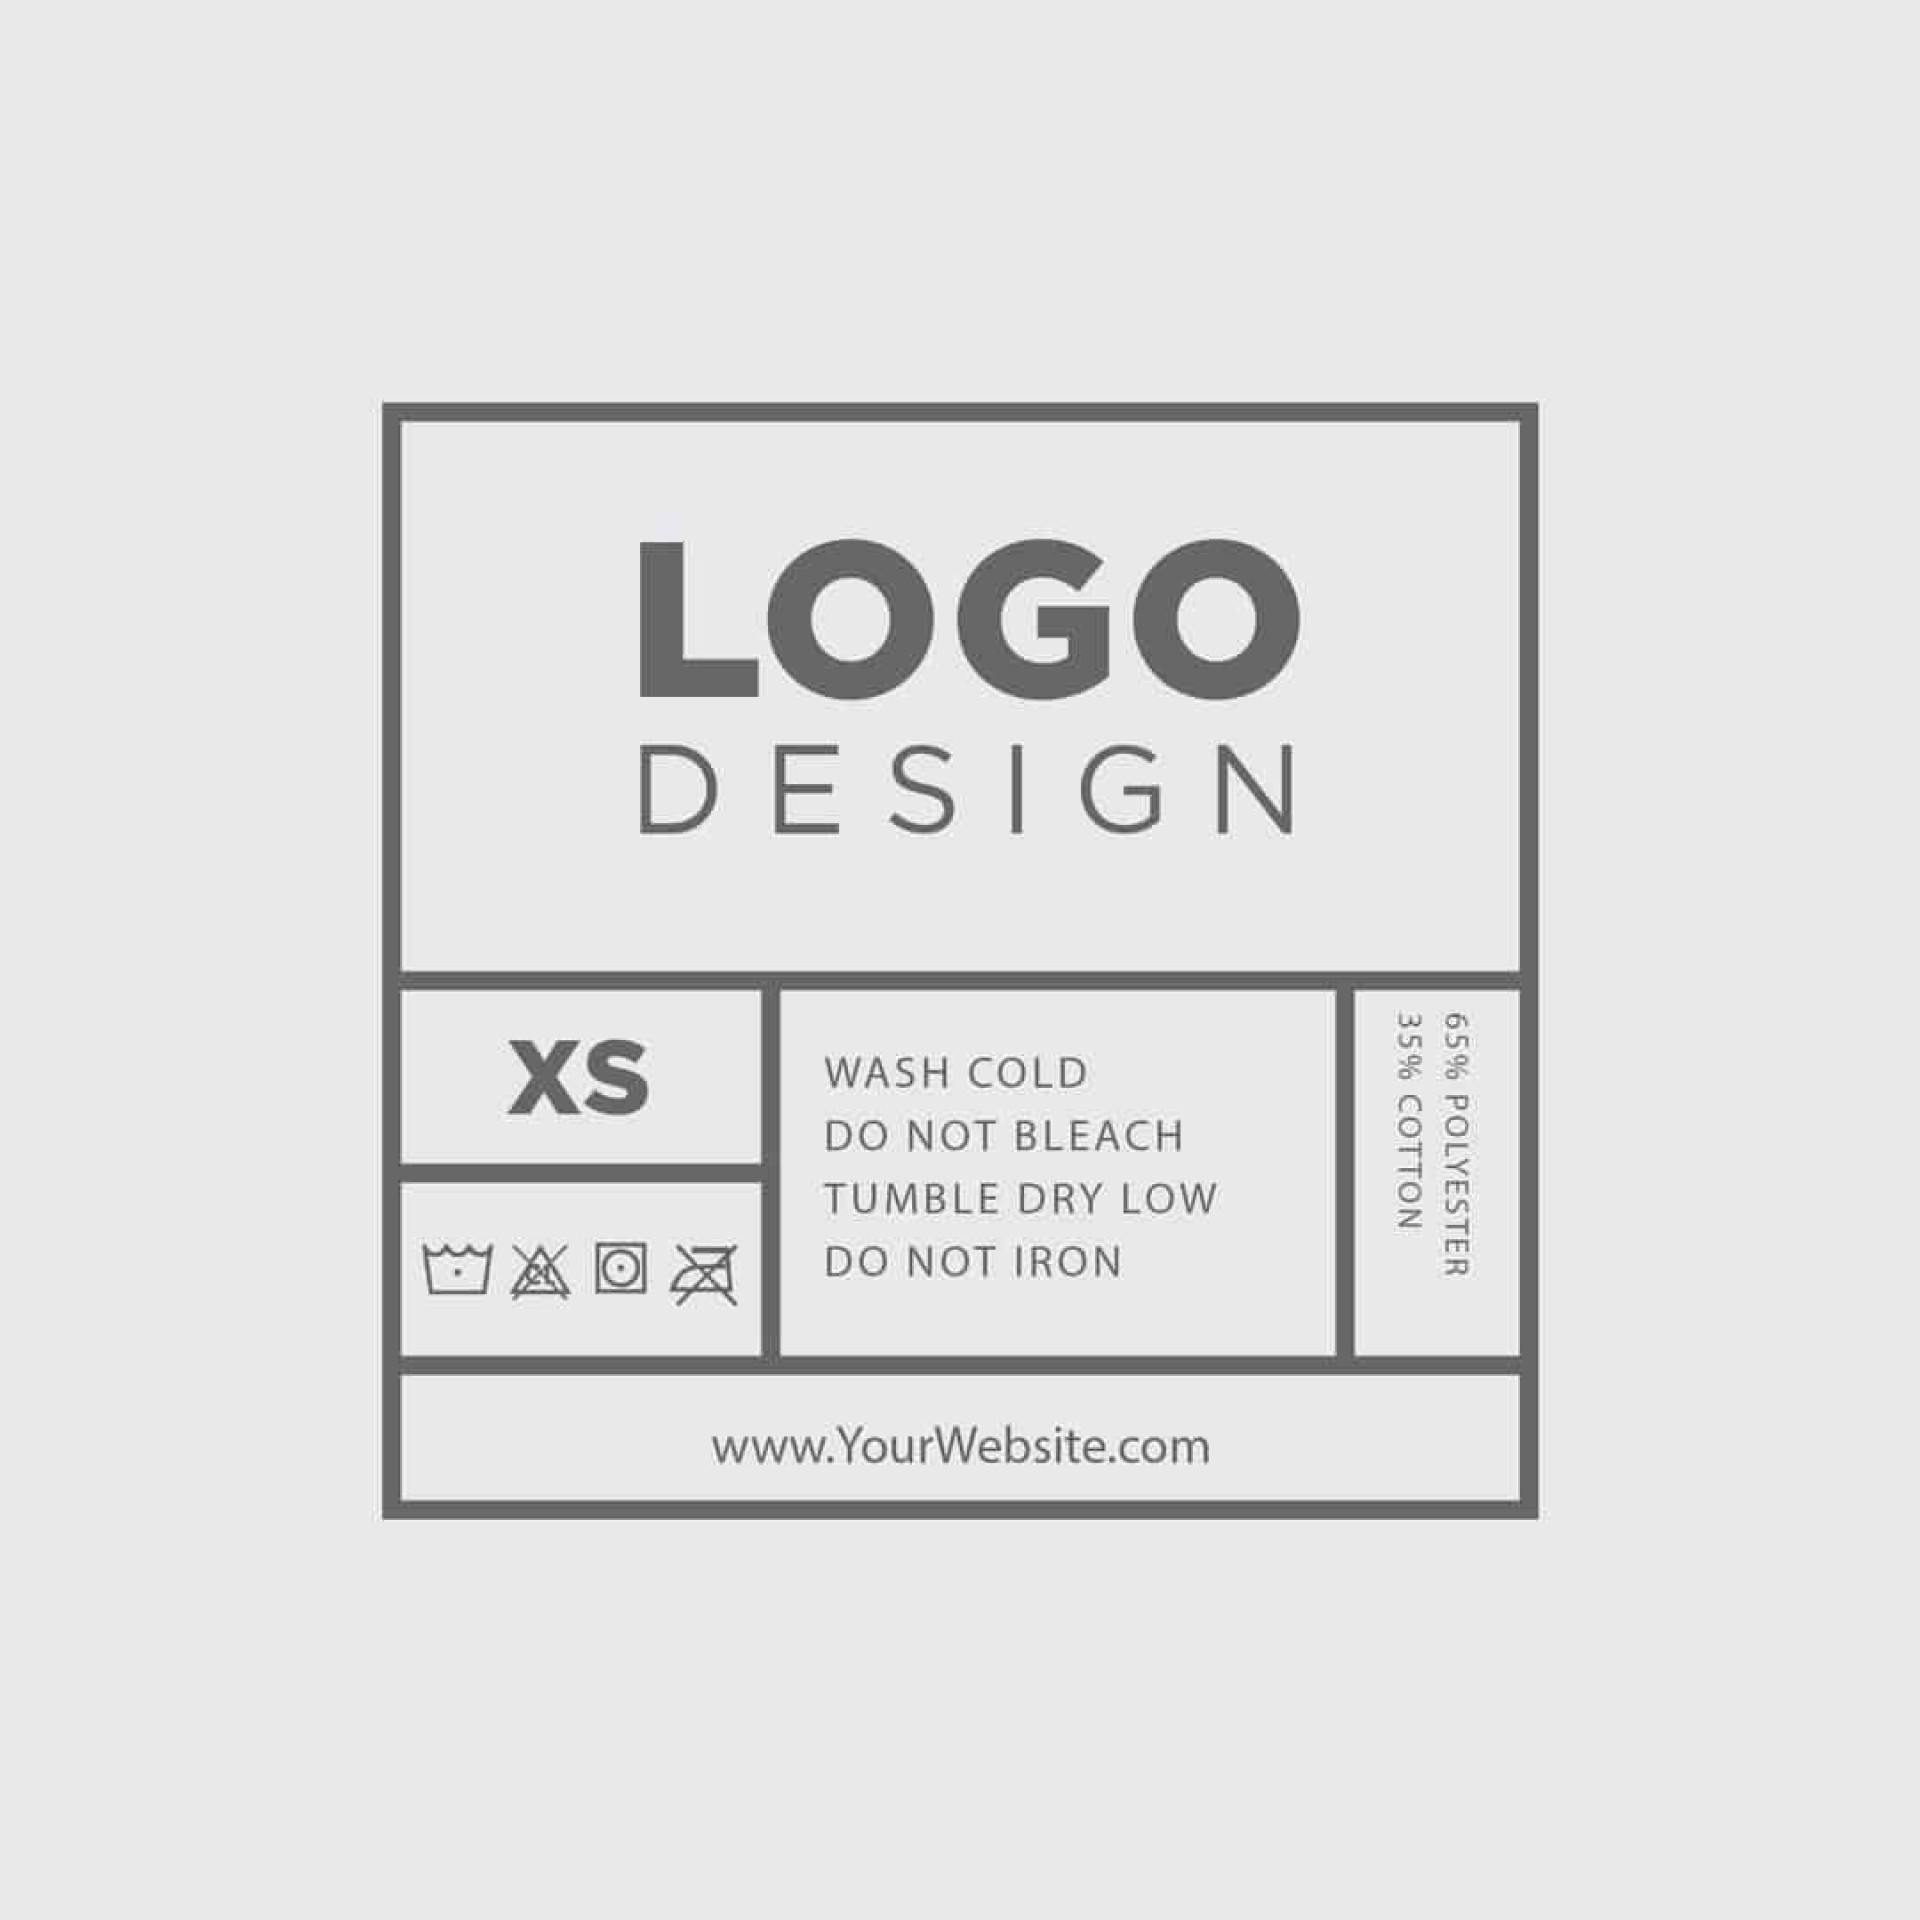 002 Breathtaking Free Clothing Label Design Template Photo  Templates Download1920